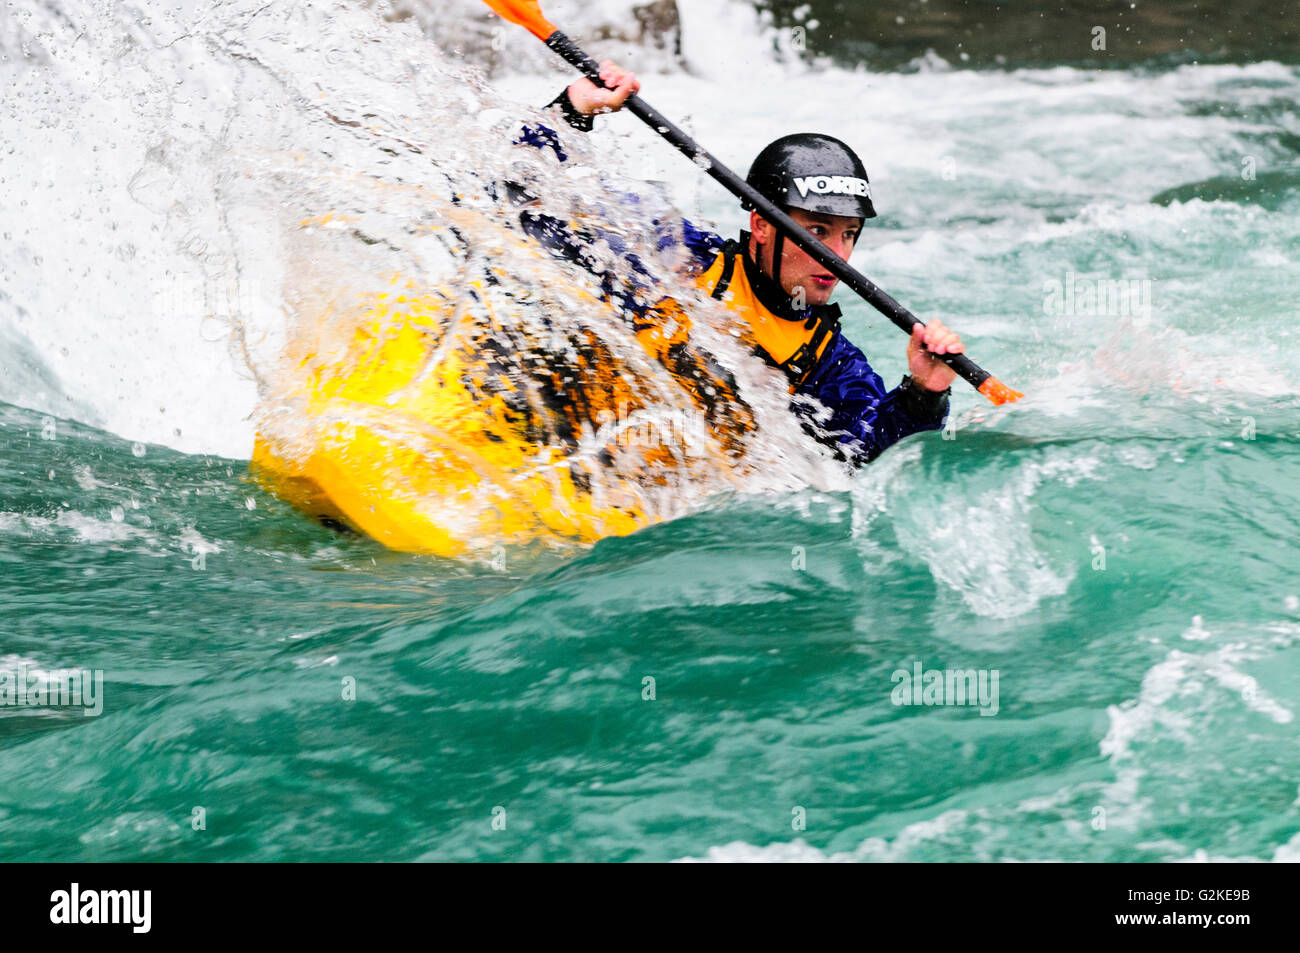 A freestyle kayaker navigates the rapids on the Kananaskis River at the Canoe Meadows course in Alberta - Stock Image